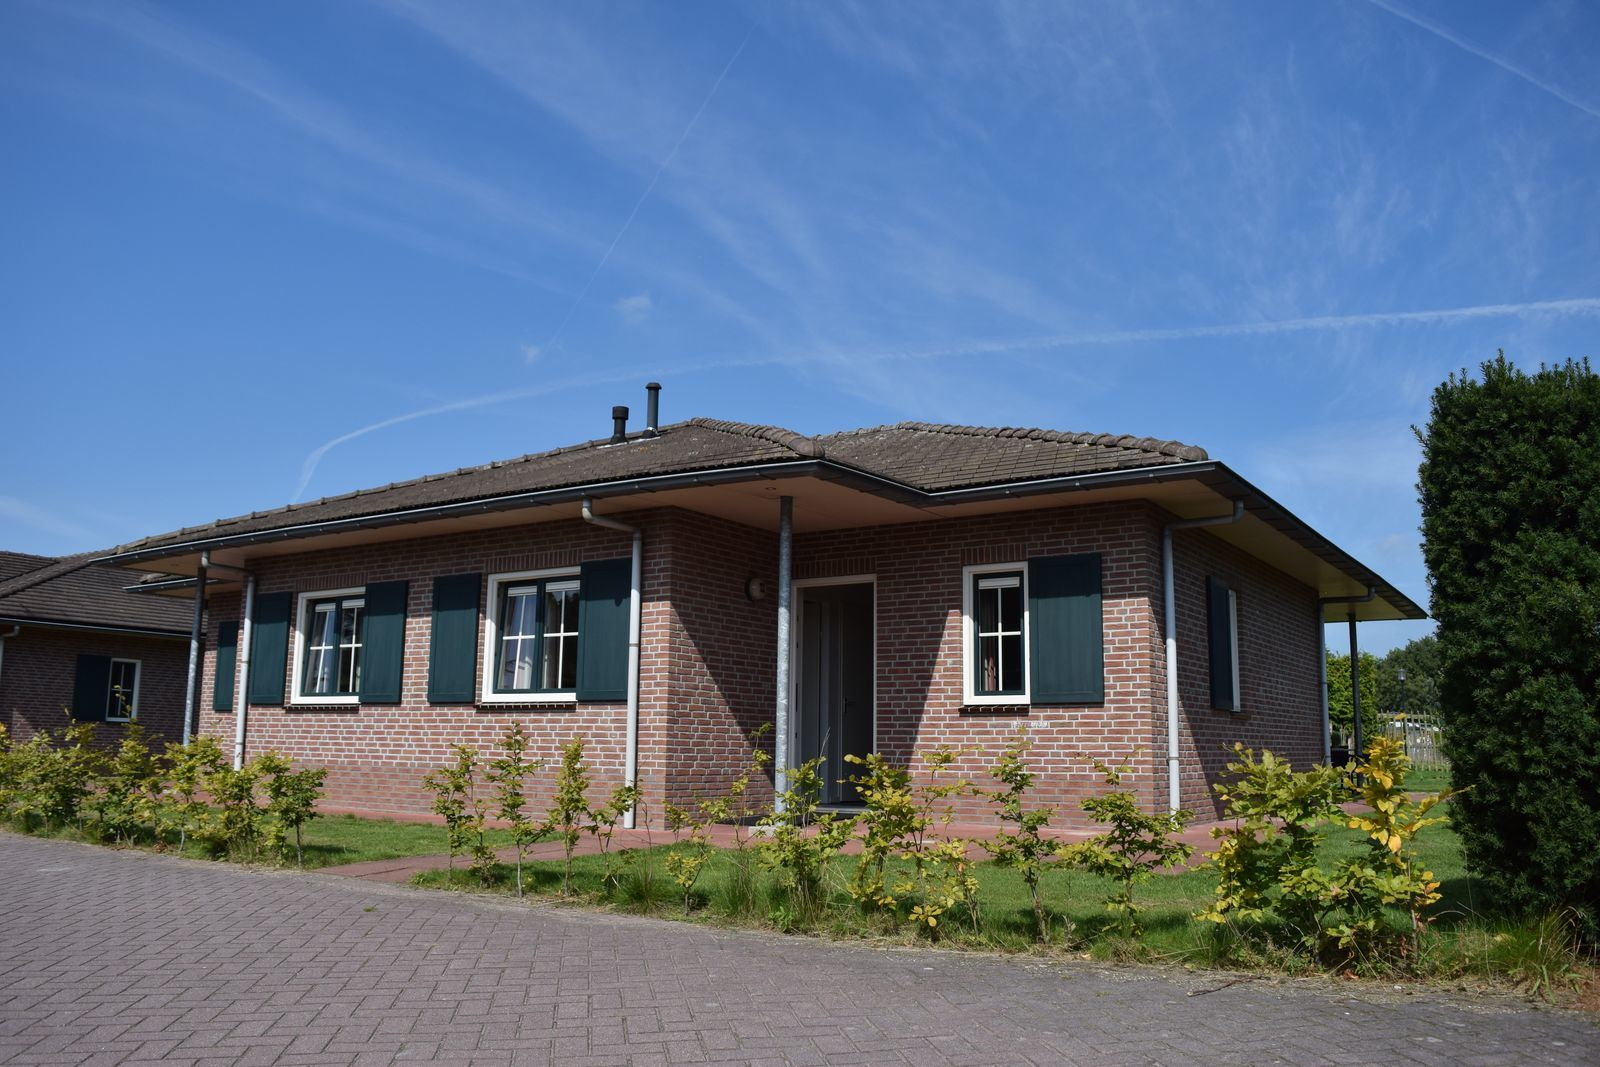 Voorde 16-person bungalow